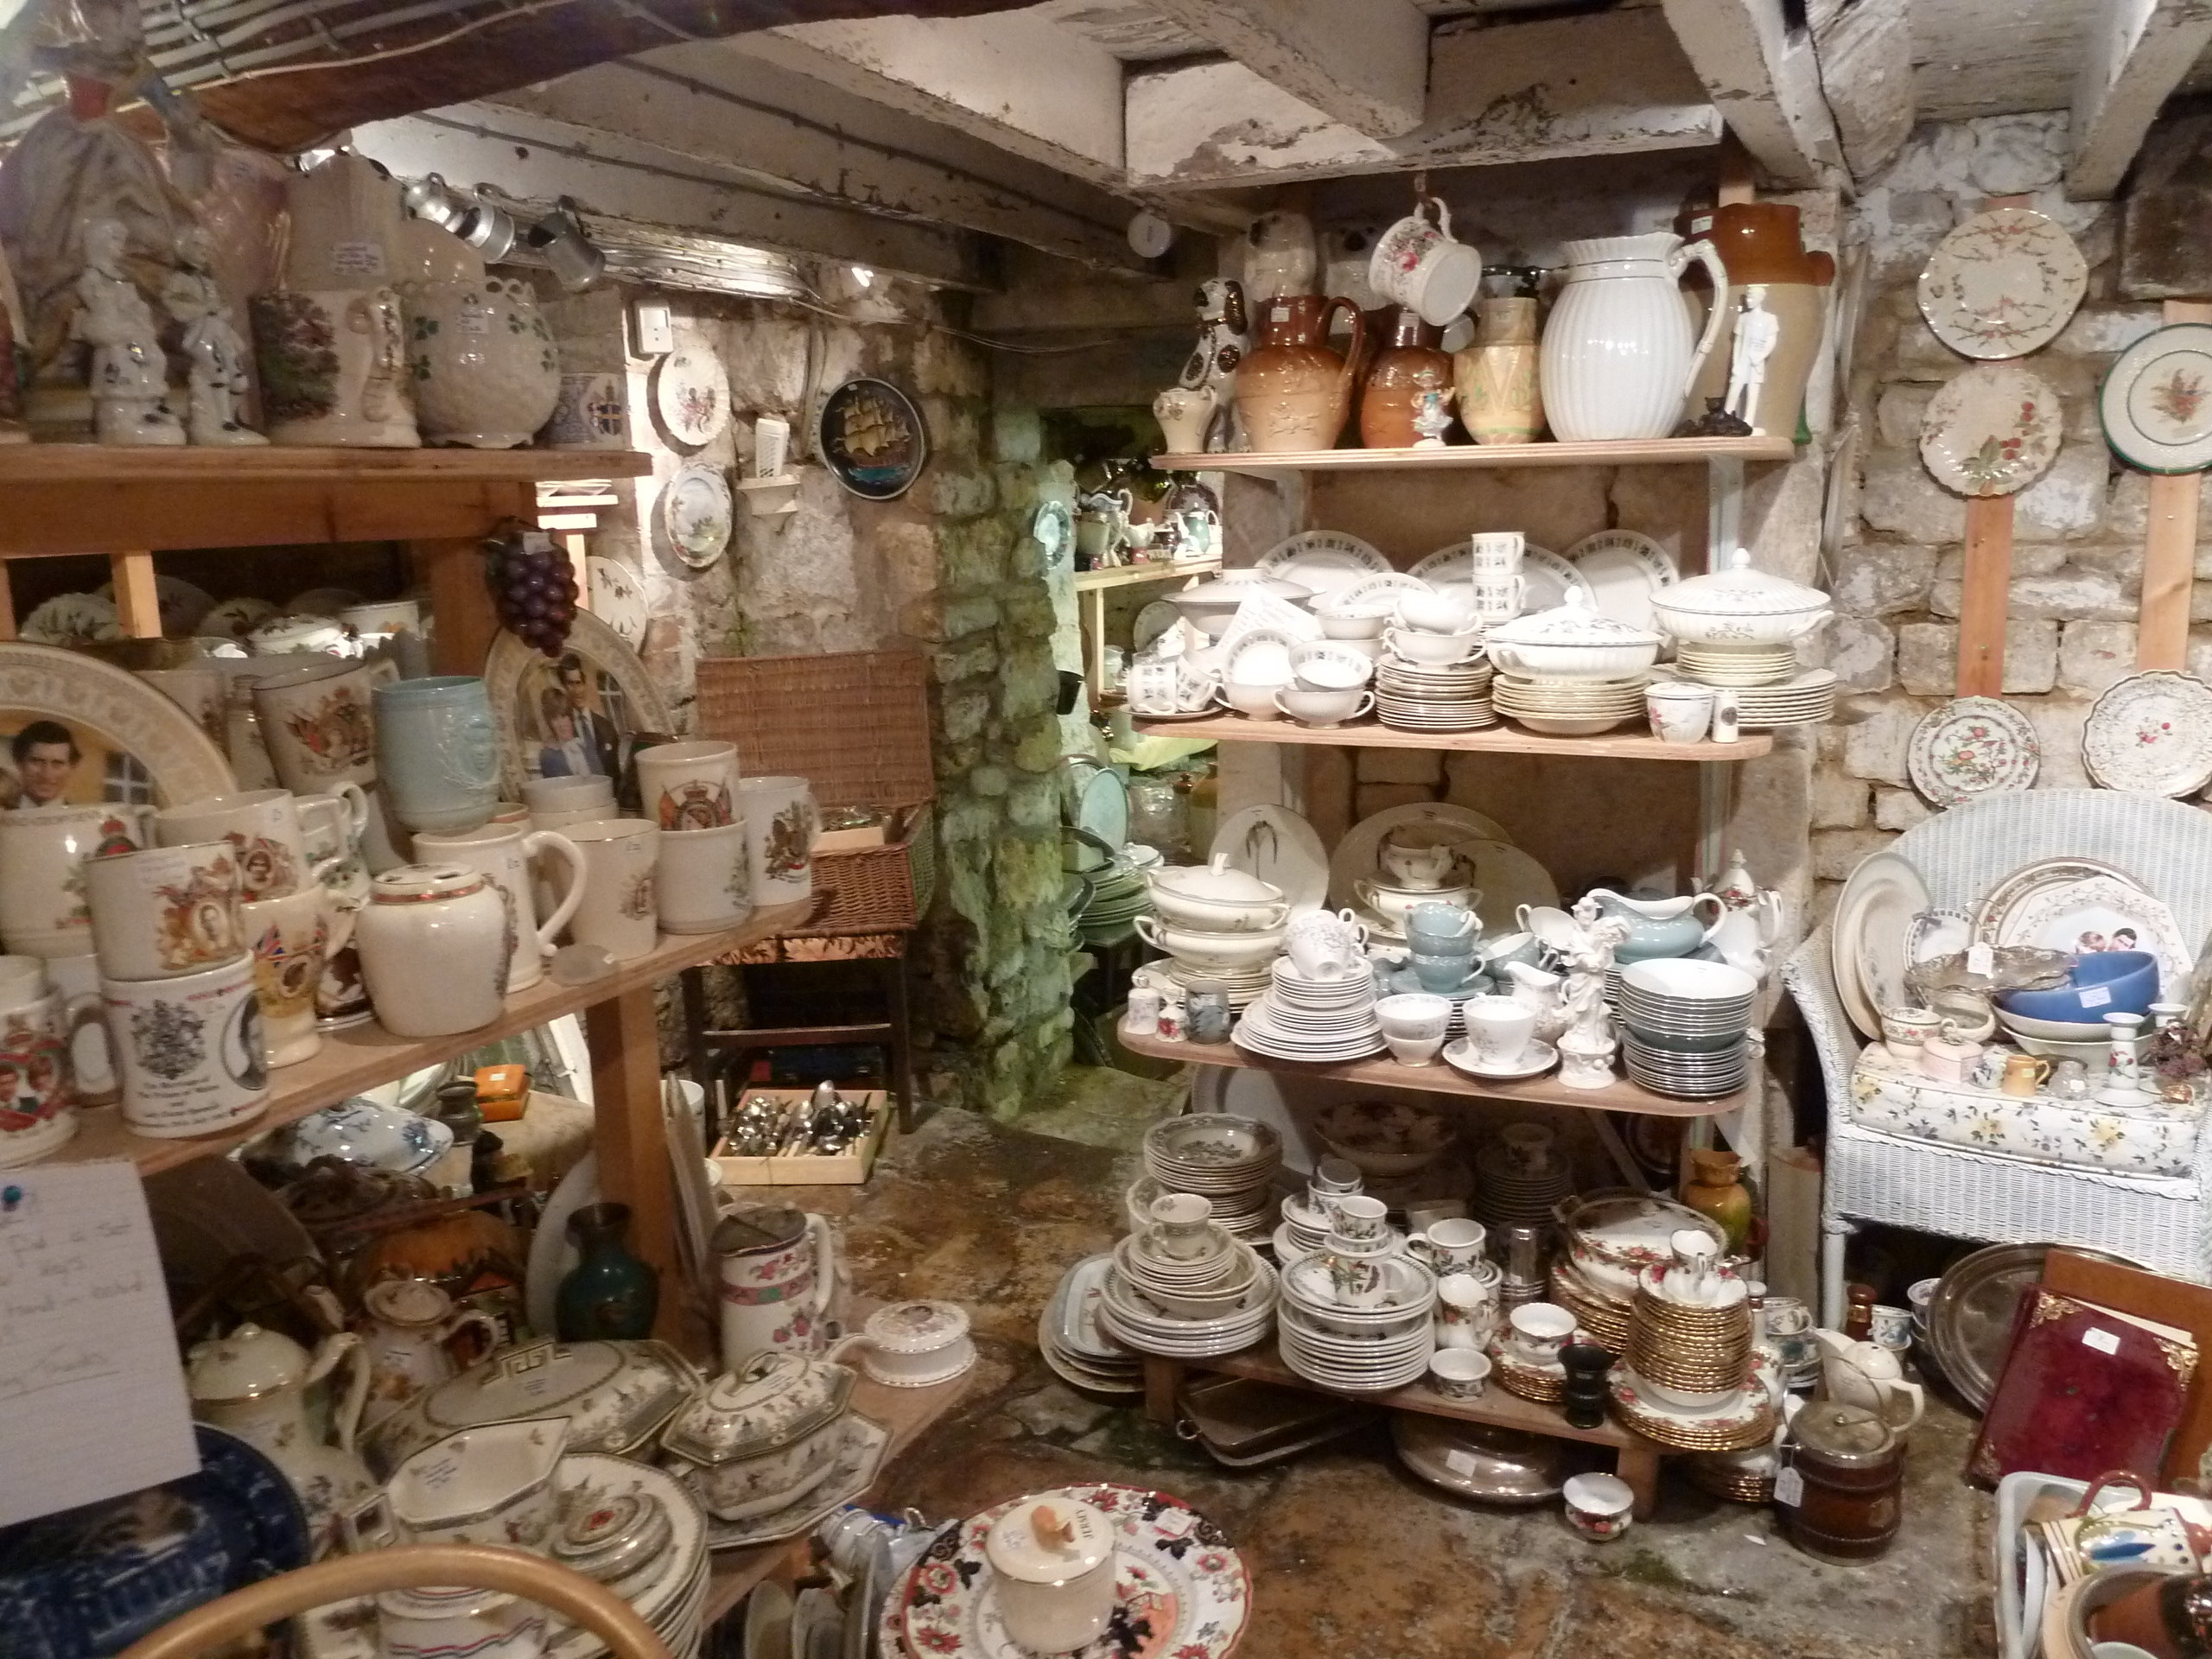 Antique Home Decor Ideas England 2012 Just A Peak Sincerely Emily